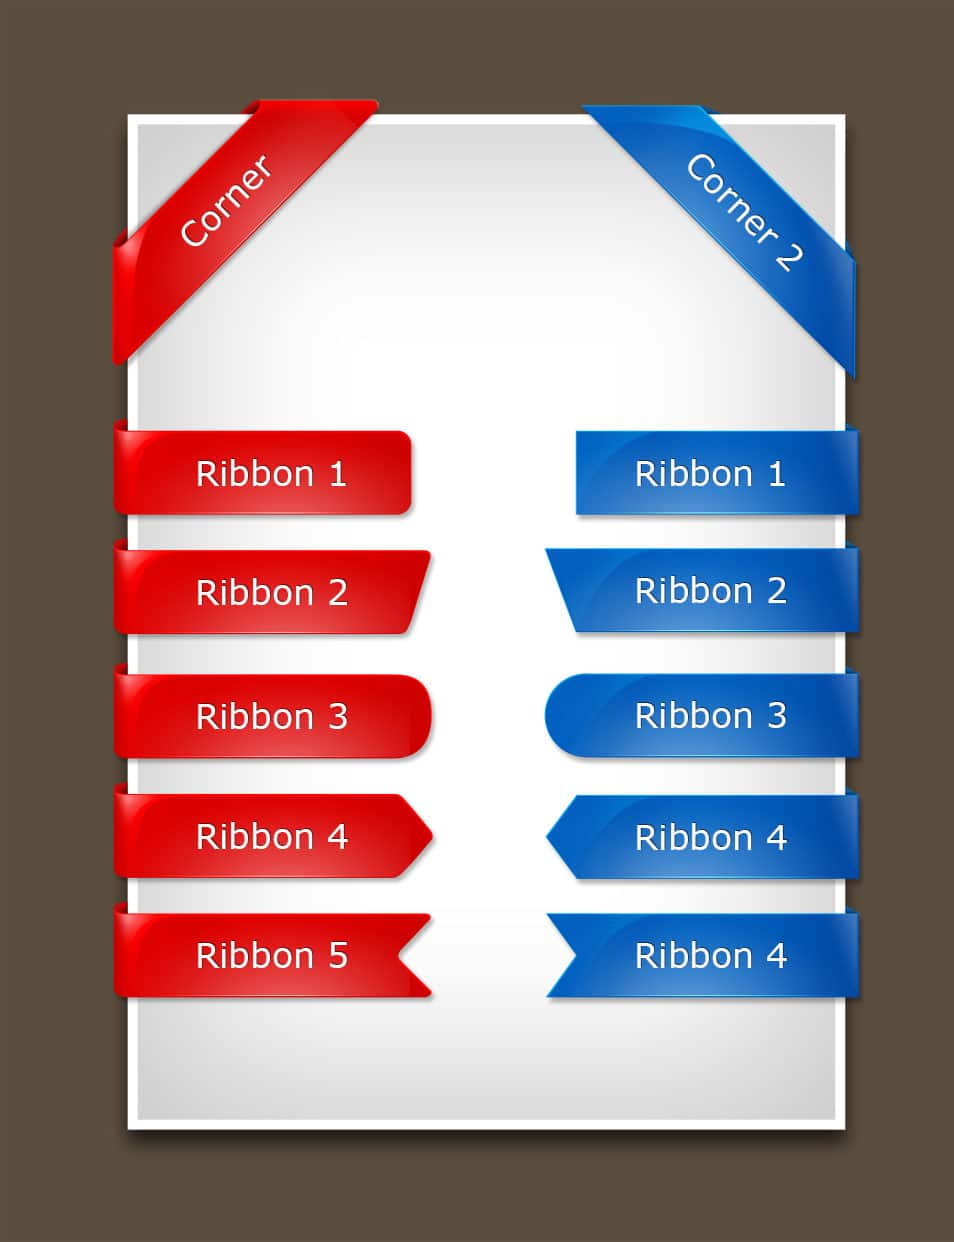 100 free ribbons psd vector files for your designs css author glossy psd ribbons baditri Image collections